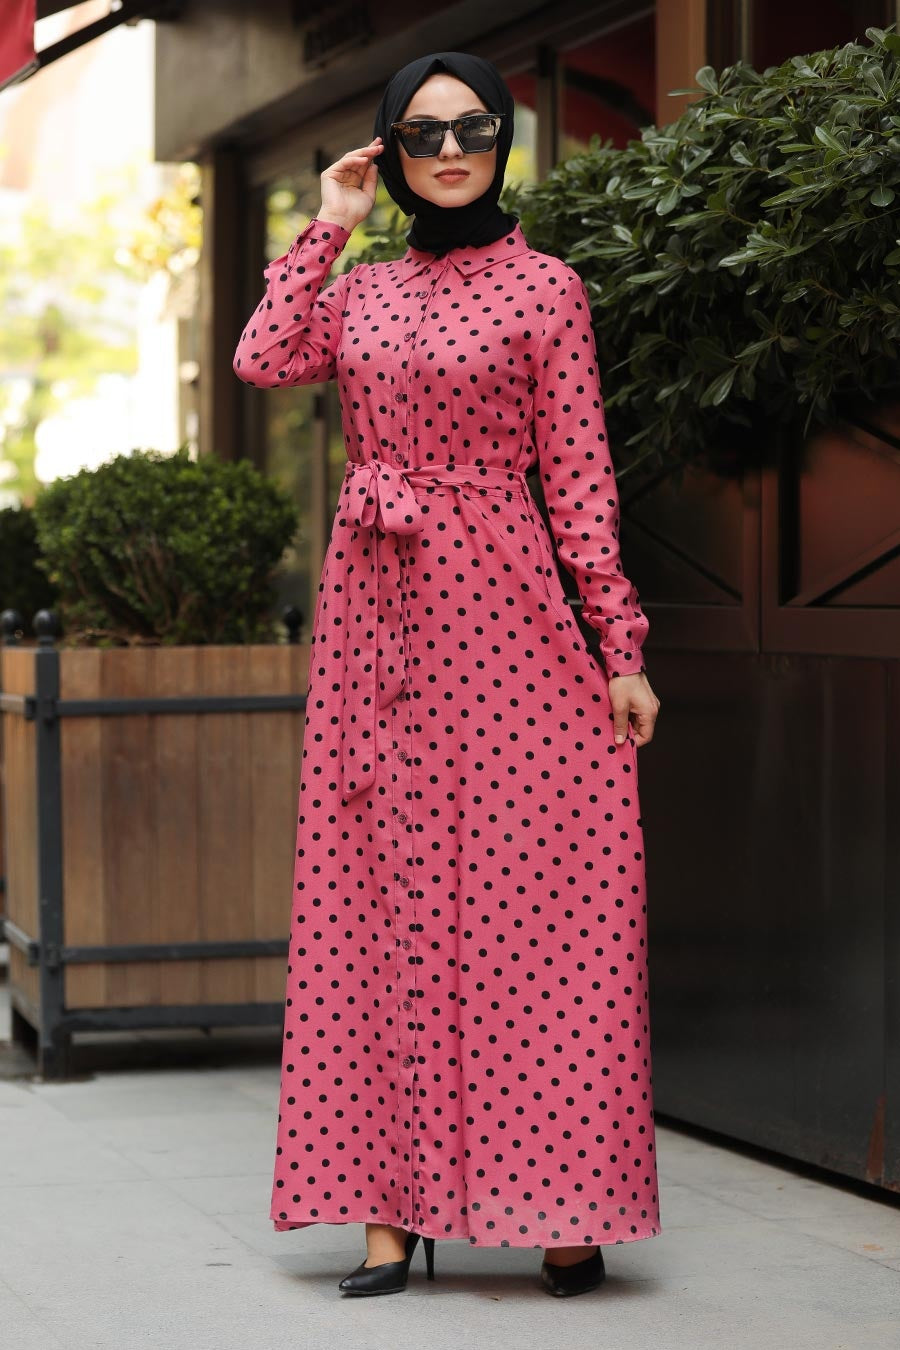 Women's Polka-Dot Pink Modest Dress